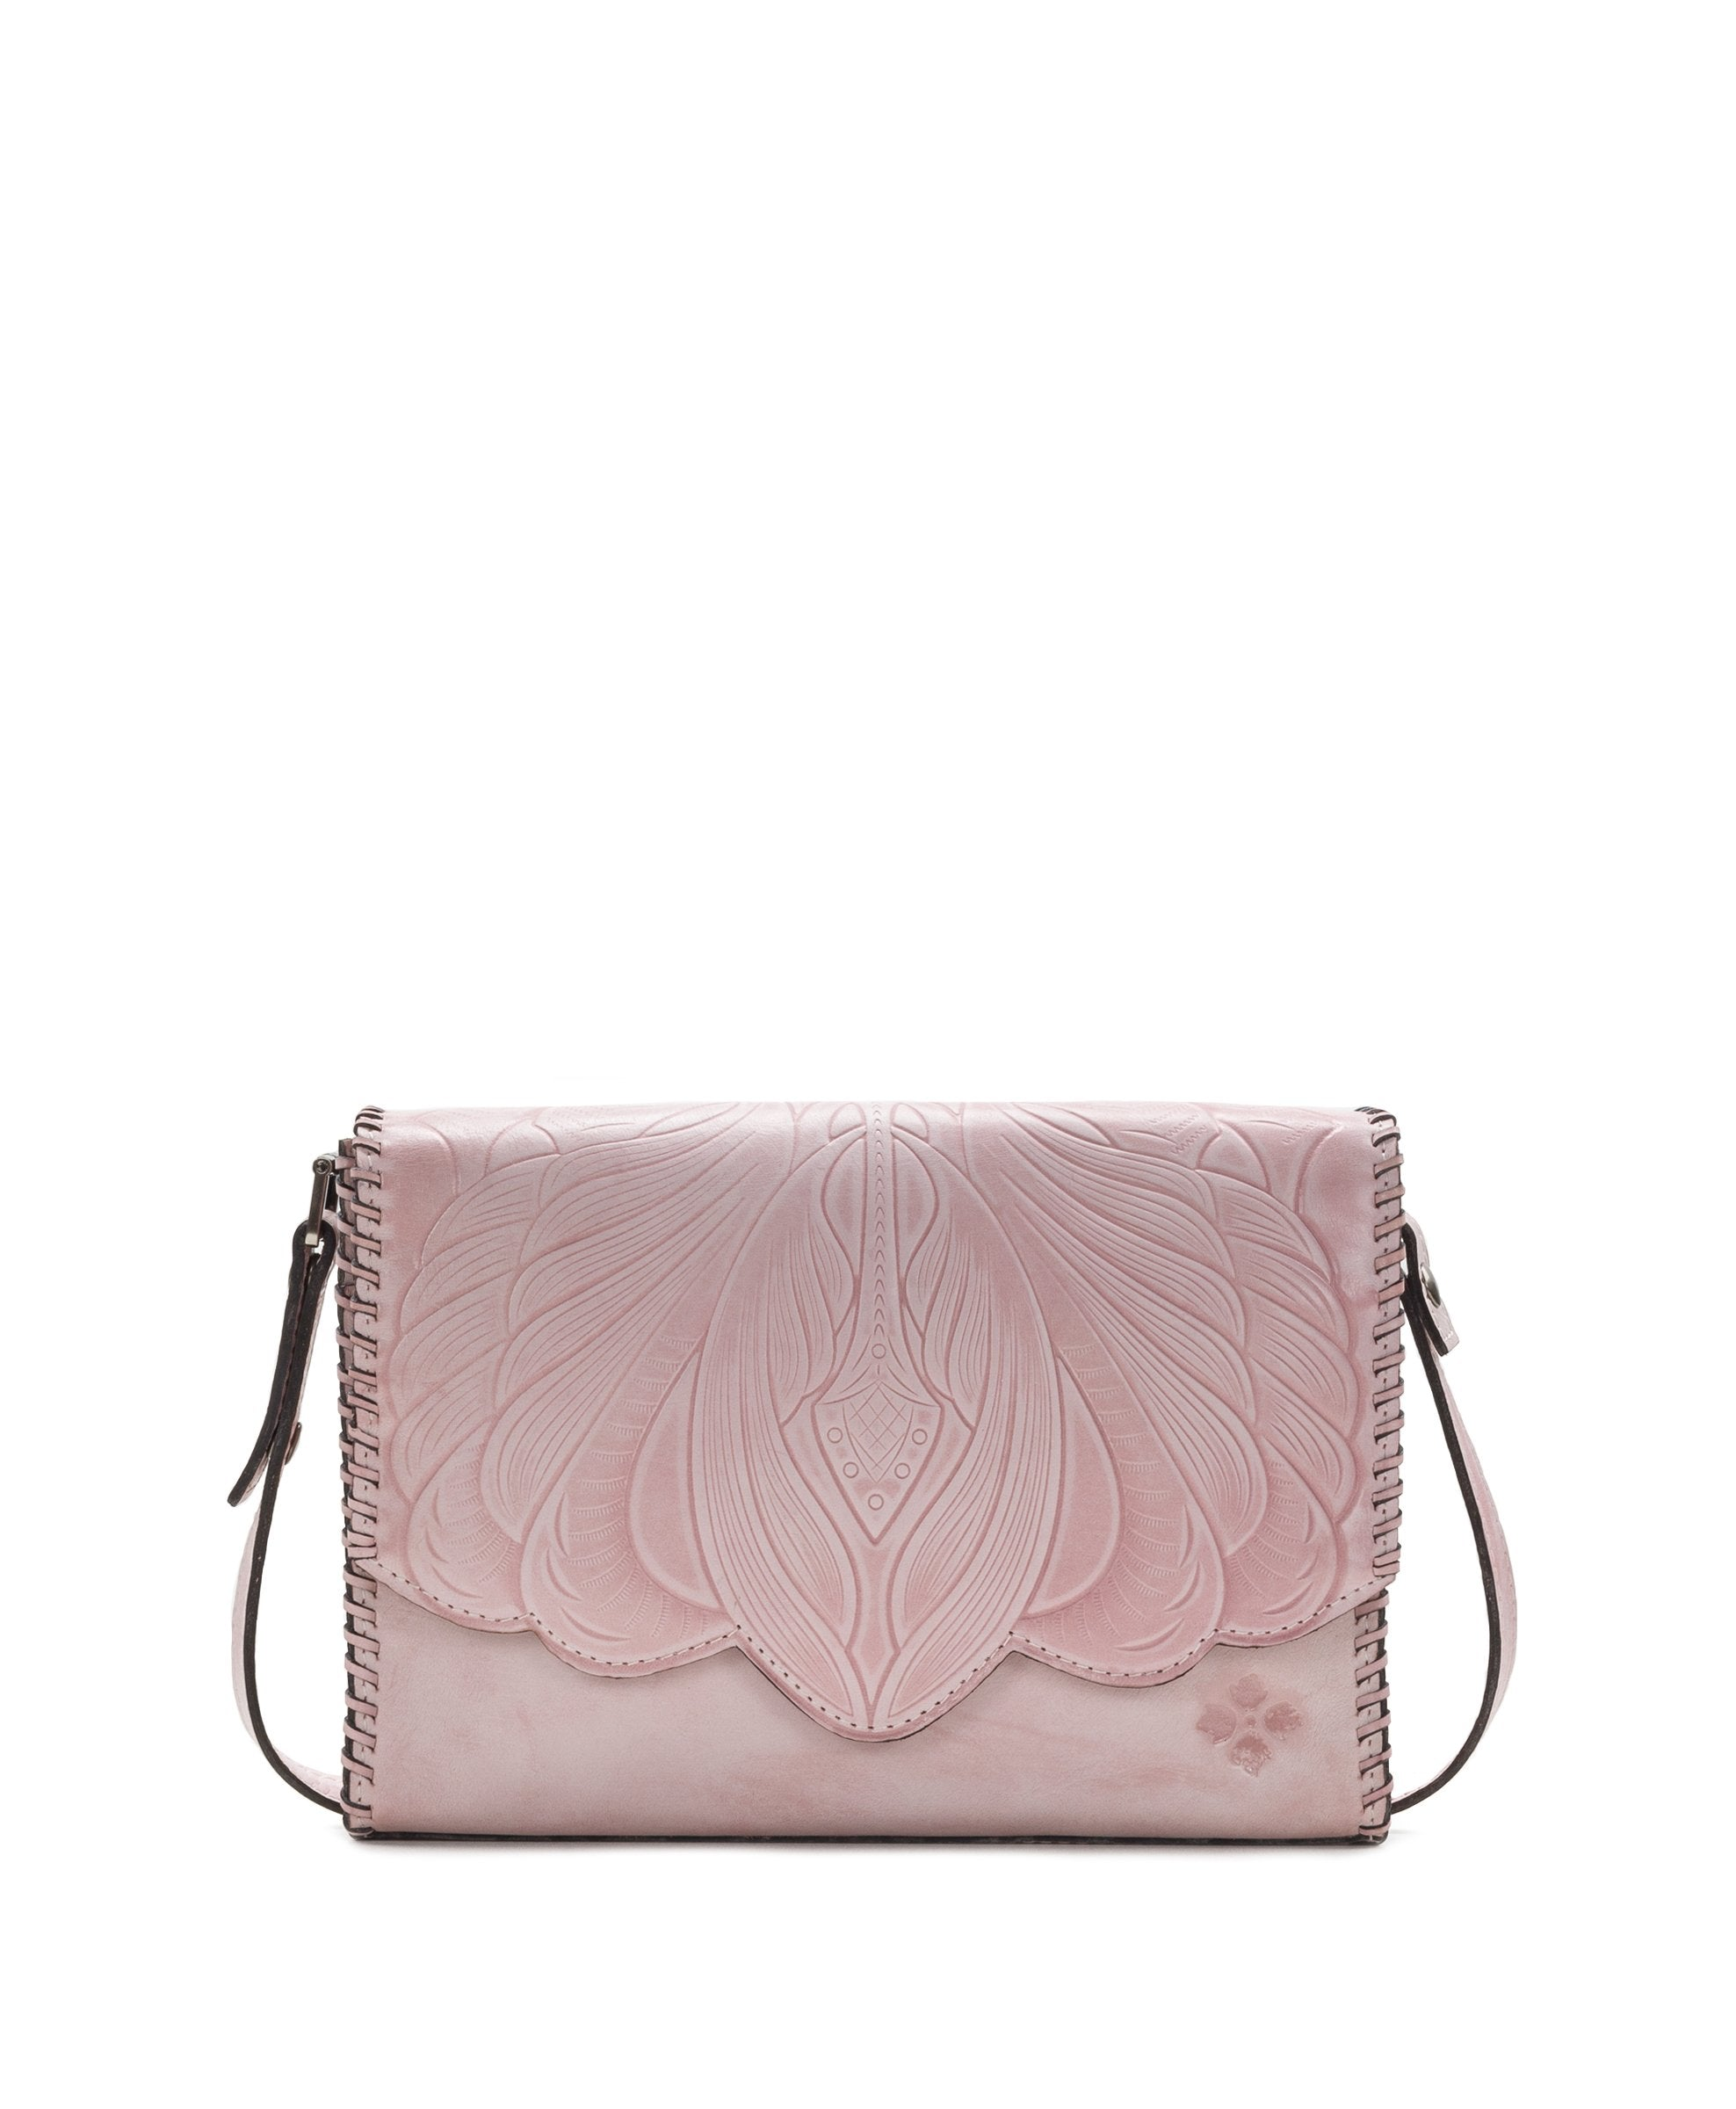 Santillana Flap - White Waxed Tooled - Pink